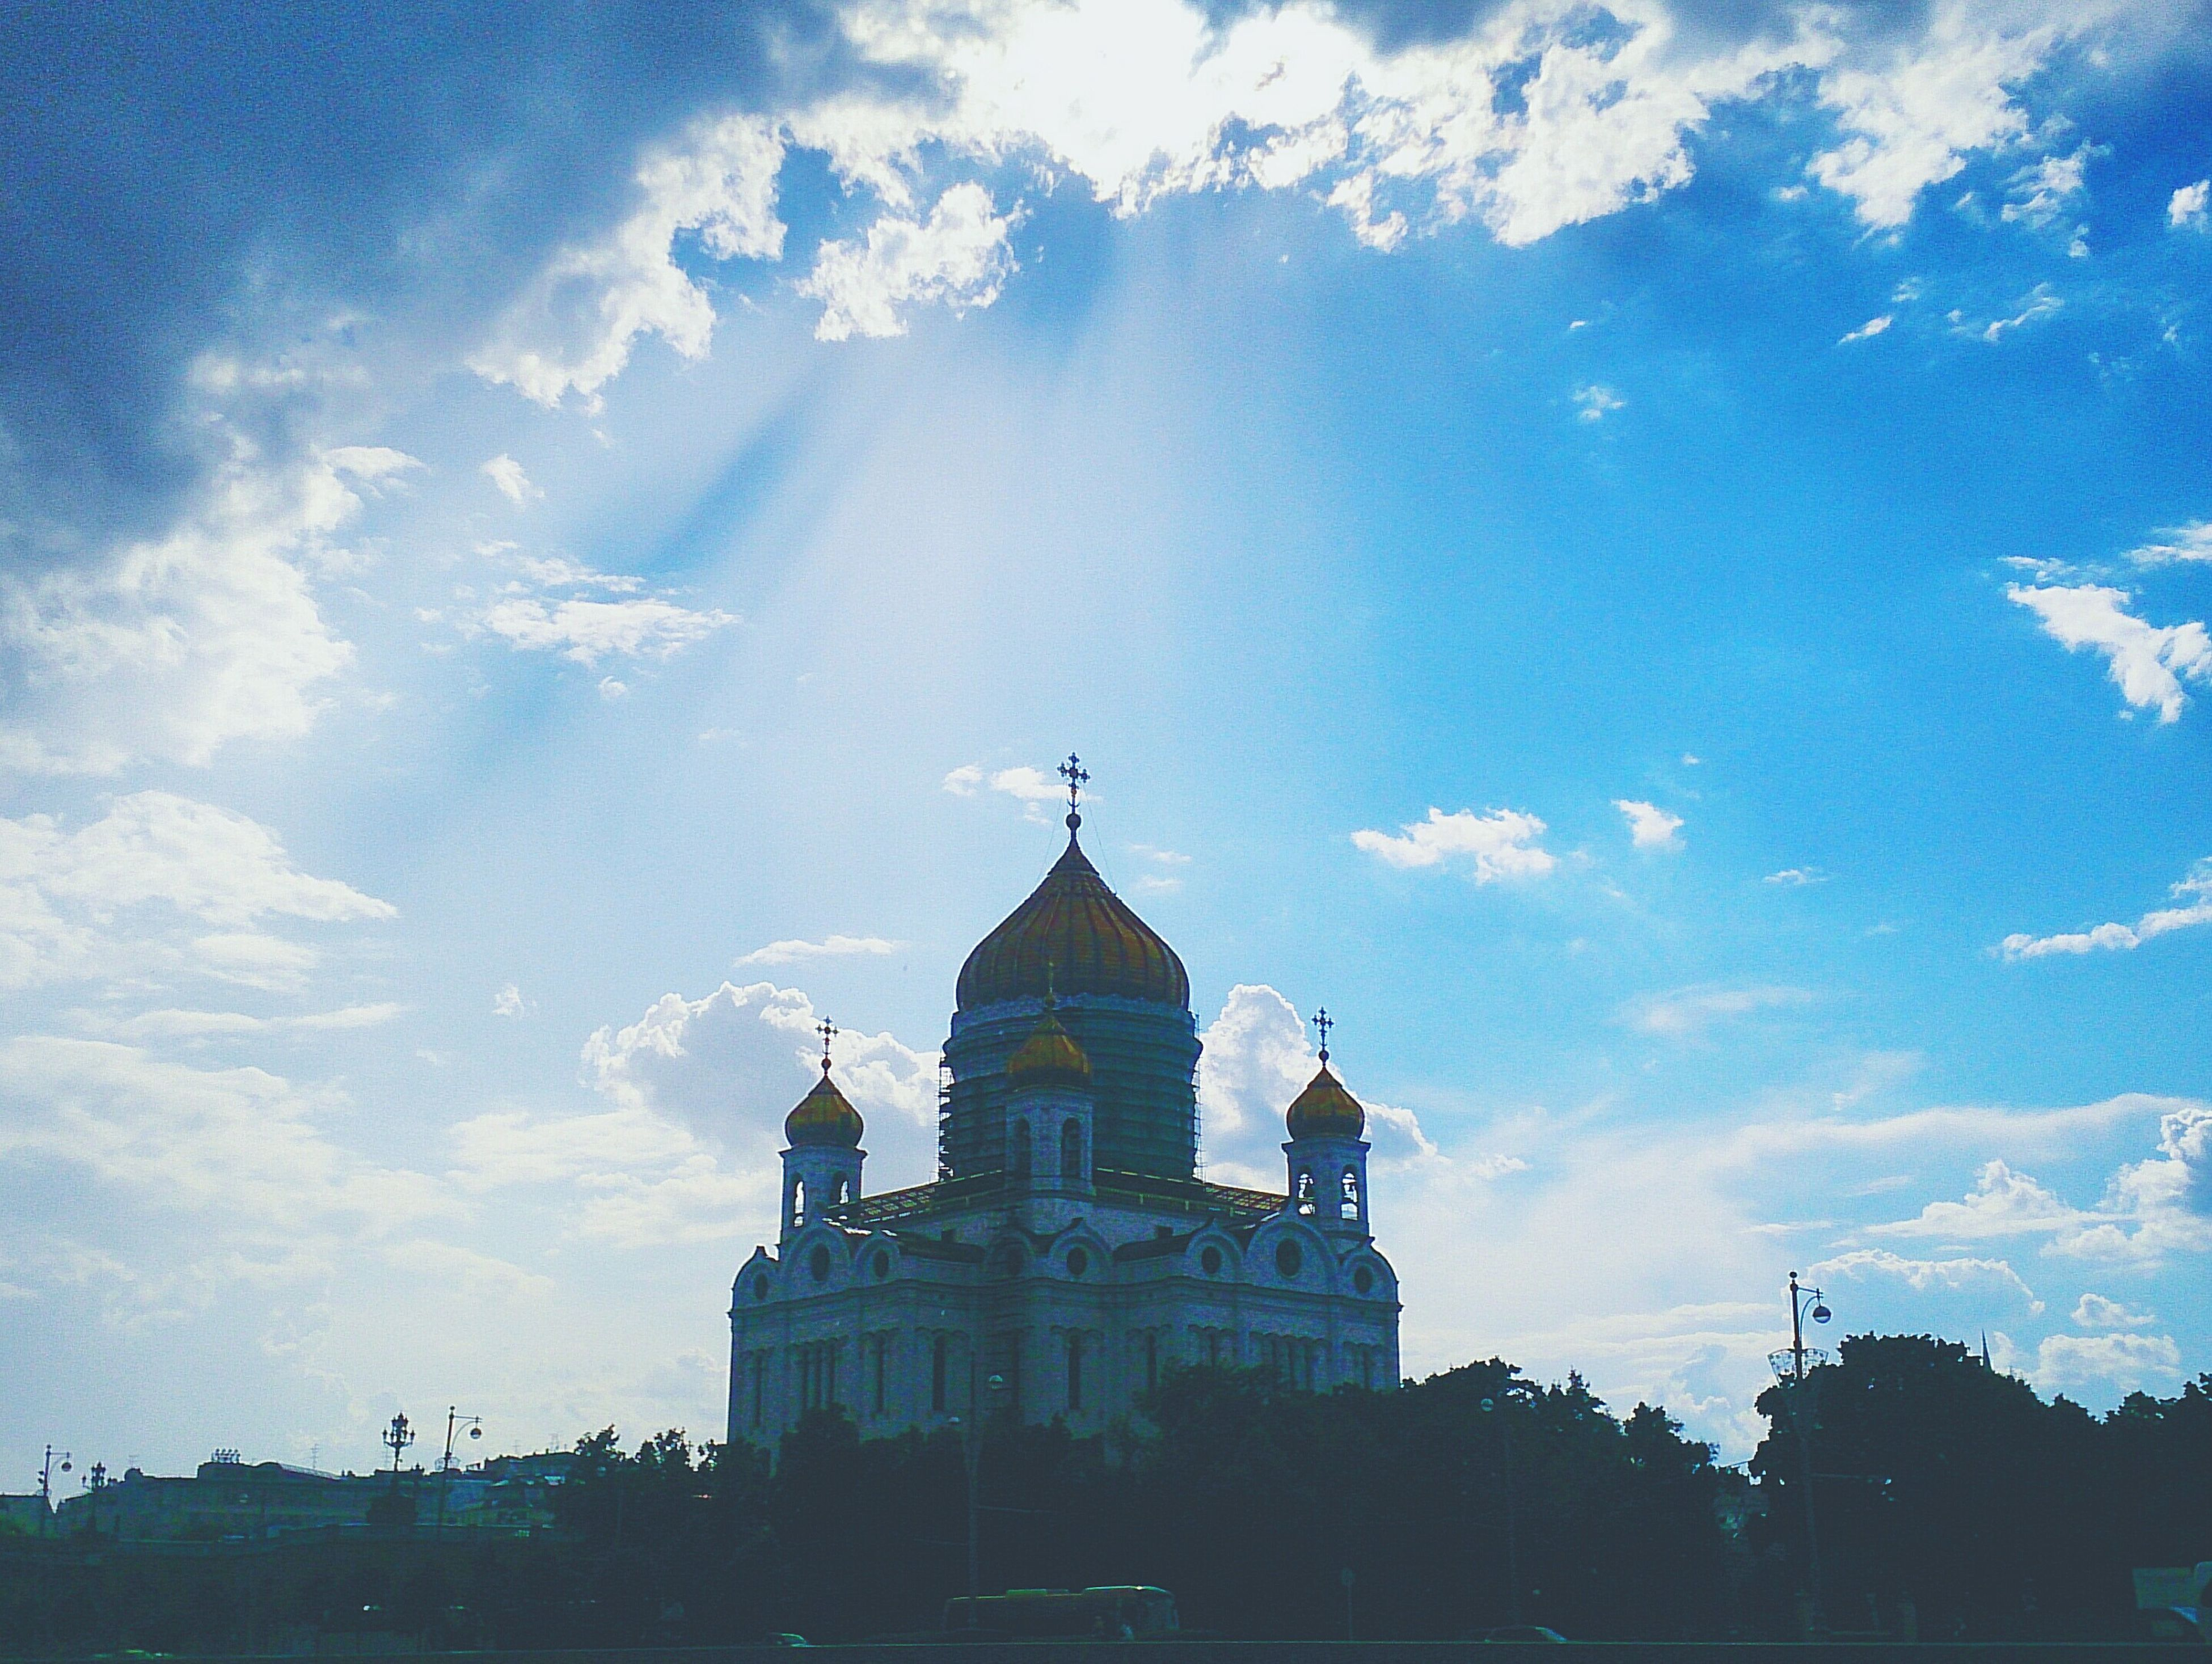 building exterior, architecture, built structure, religion, church, place of worship, spirituality, sky, cathedral, cloud - sky, low angle view, dome, cloud, cross, blue, history, silhouette, outdoors